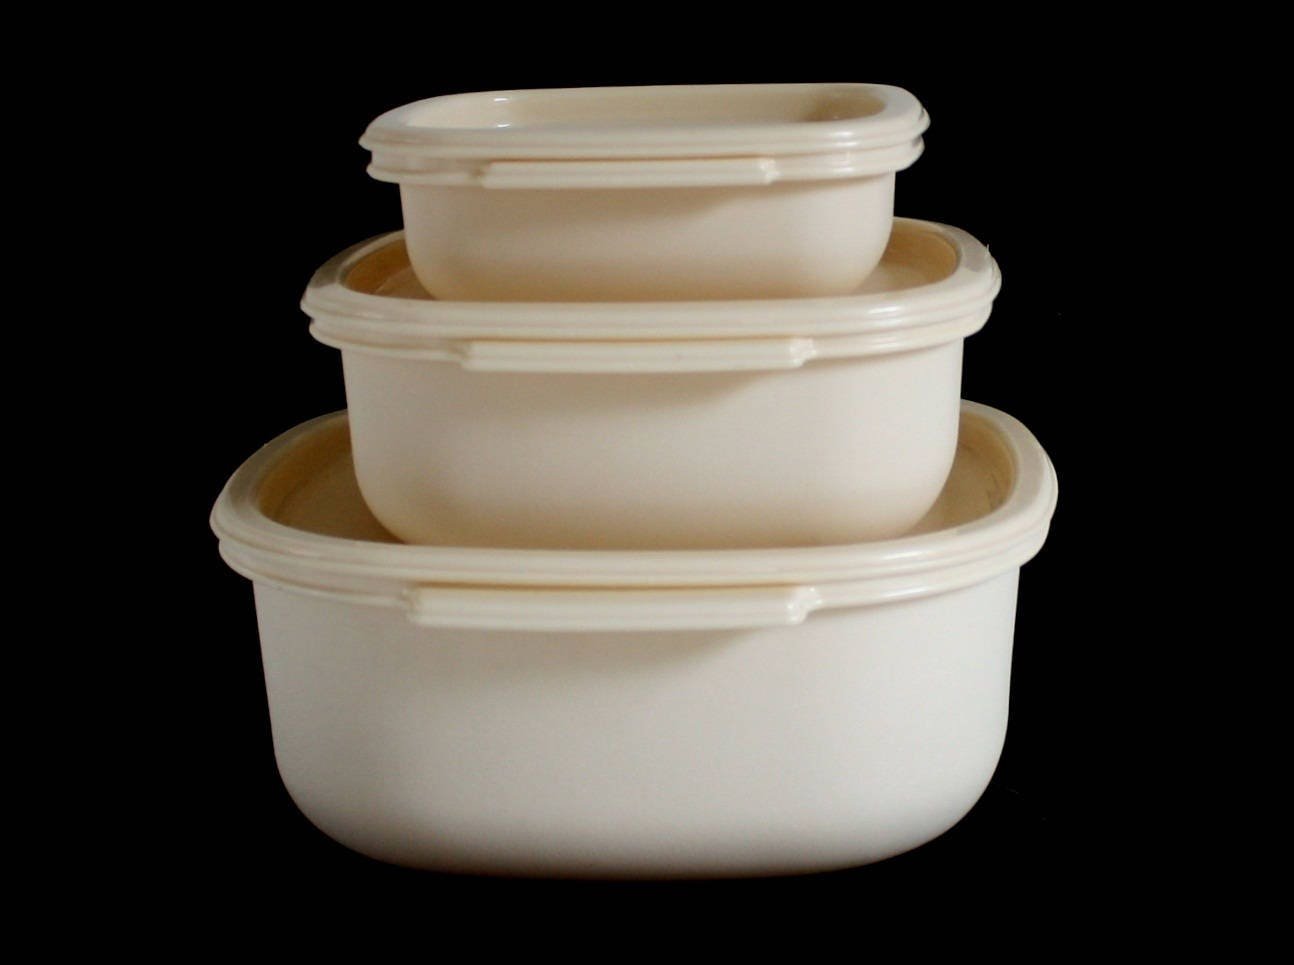 Rubbermaid Containers Lids 12 cups 2248 2249 6 cups 2246 2247 2